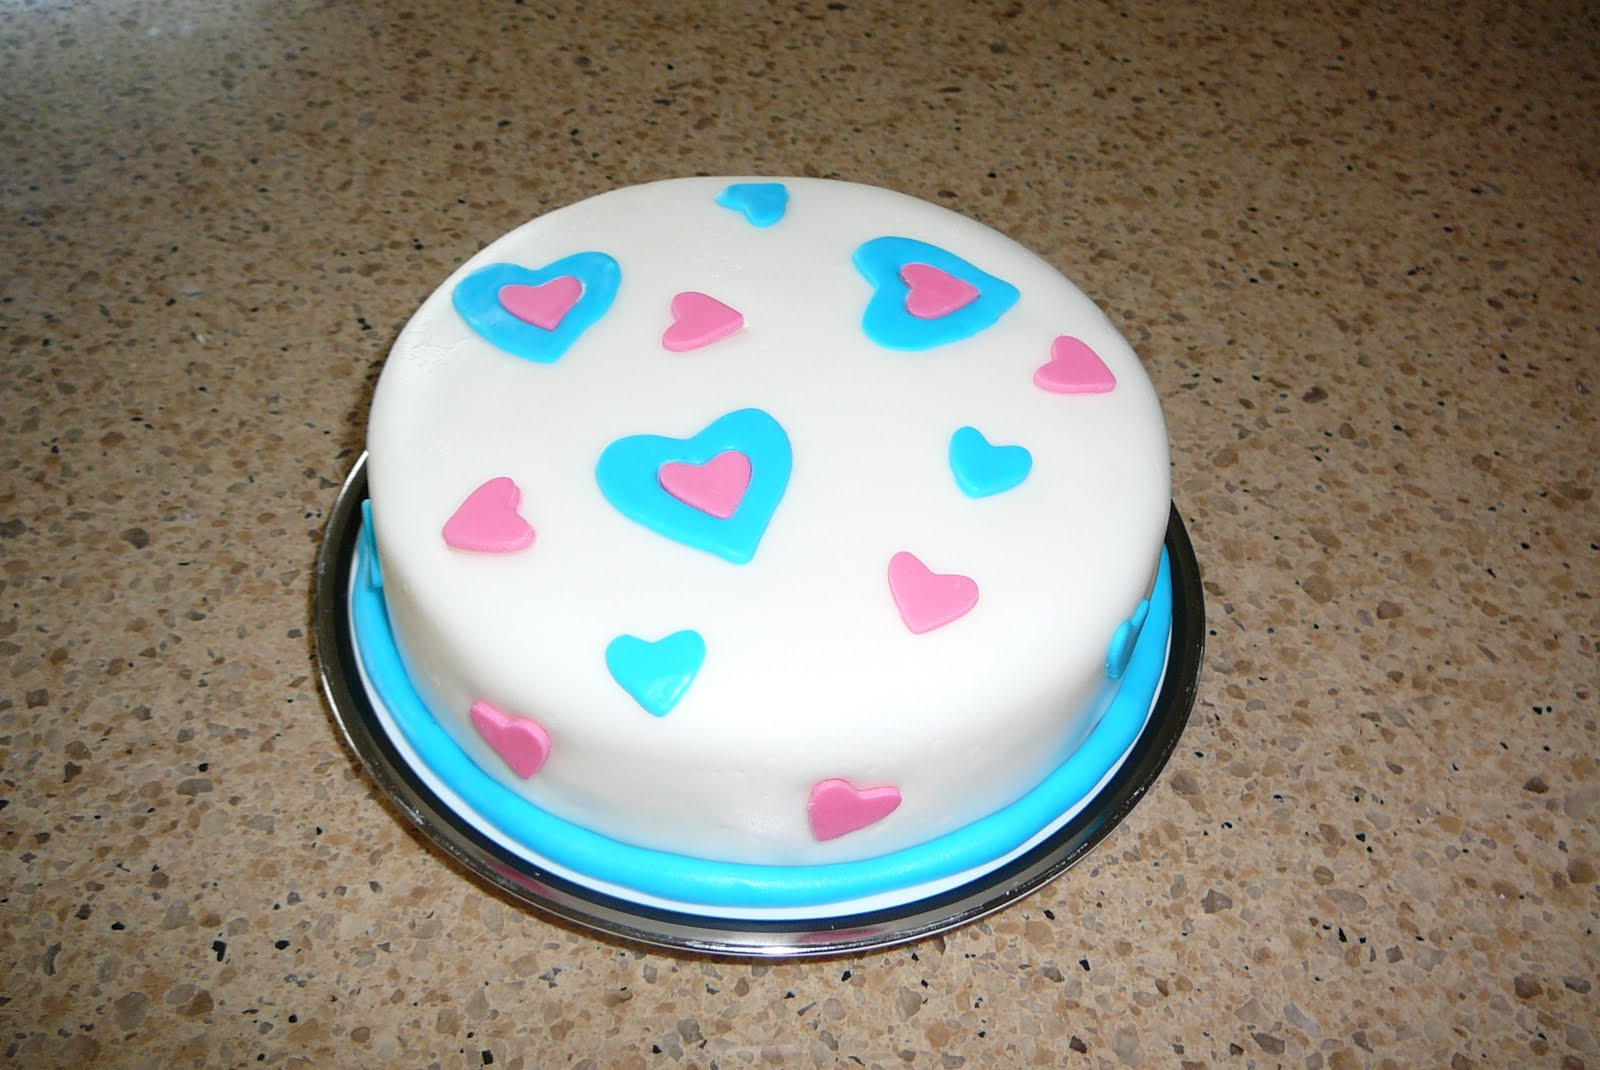 How To Store A Fondant Cake In The Fridge